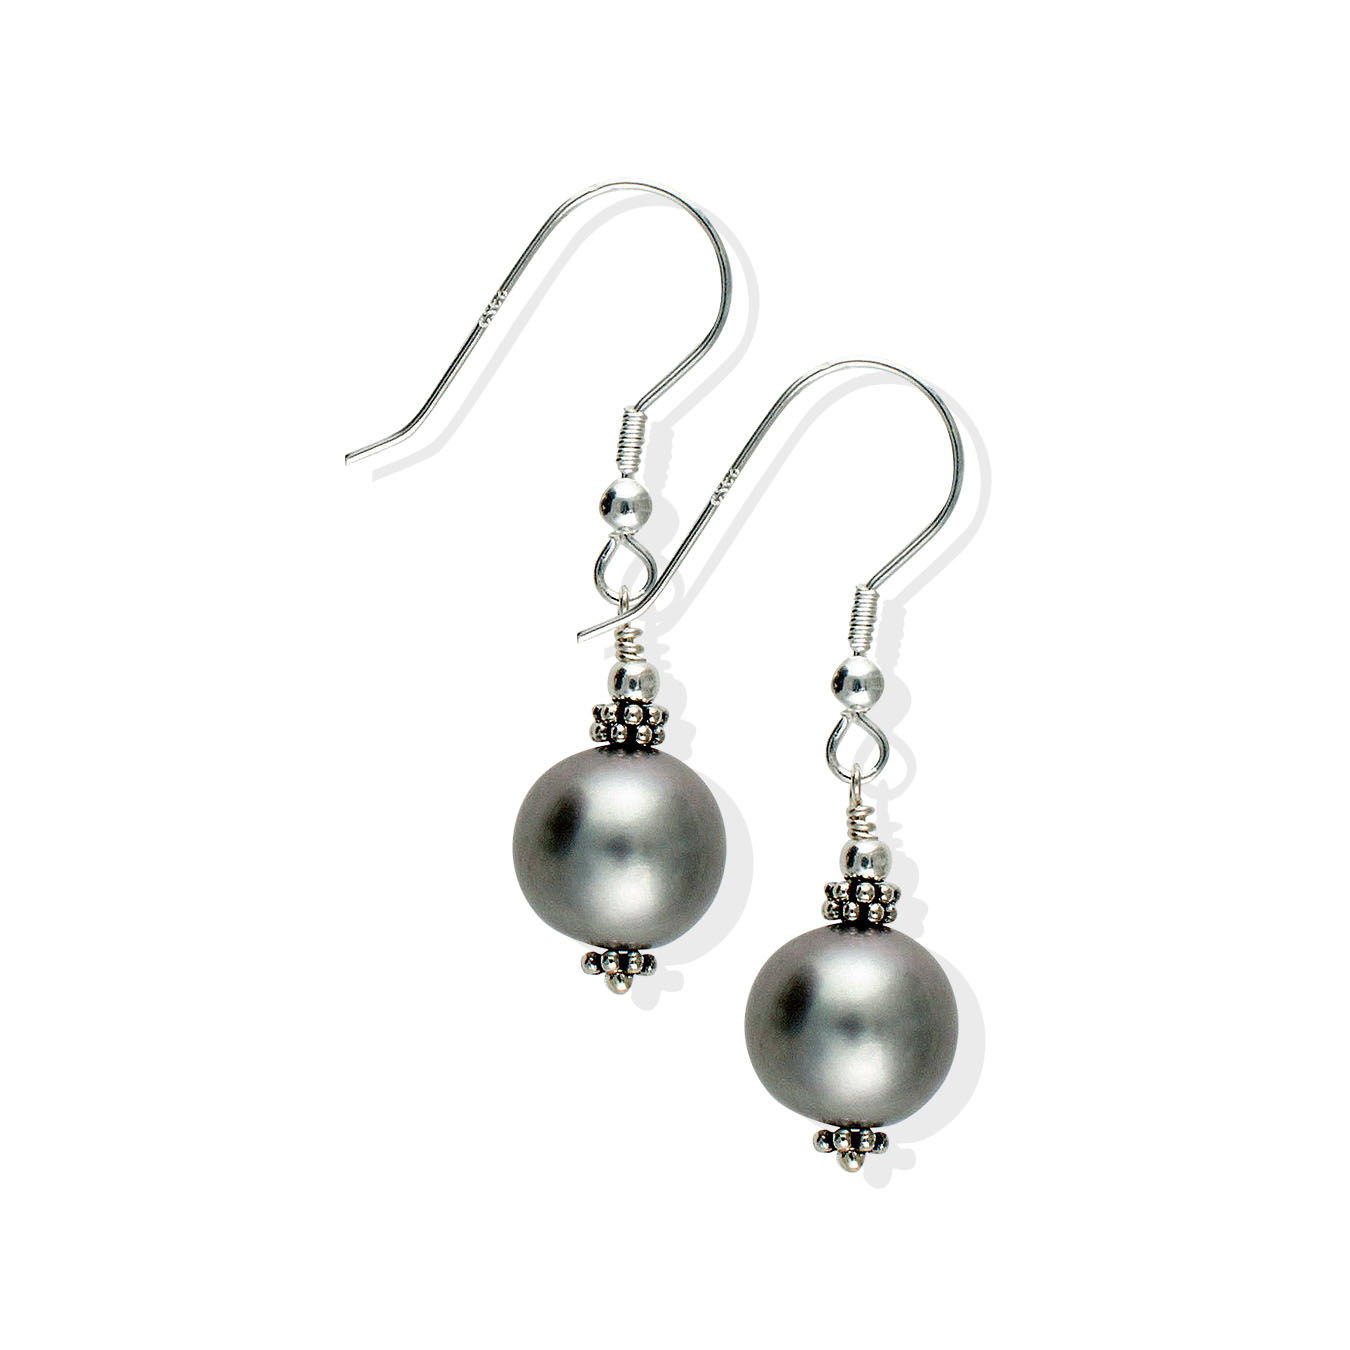 Create your own necklace with choice of AA pearls and hammered silver